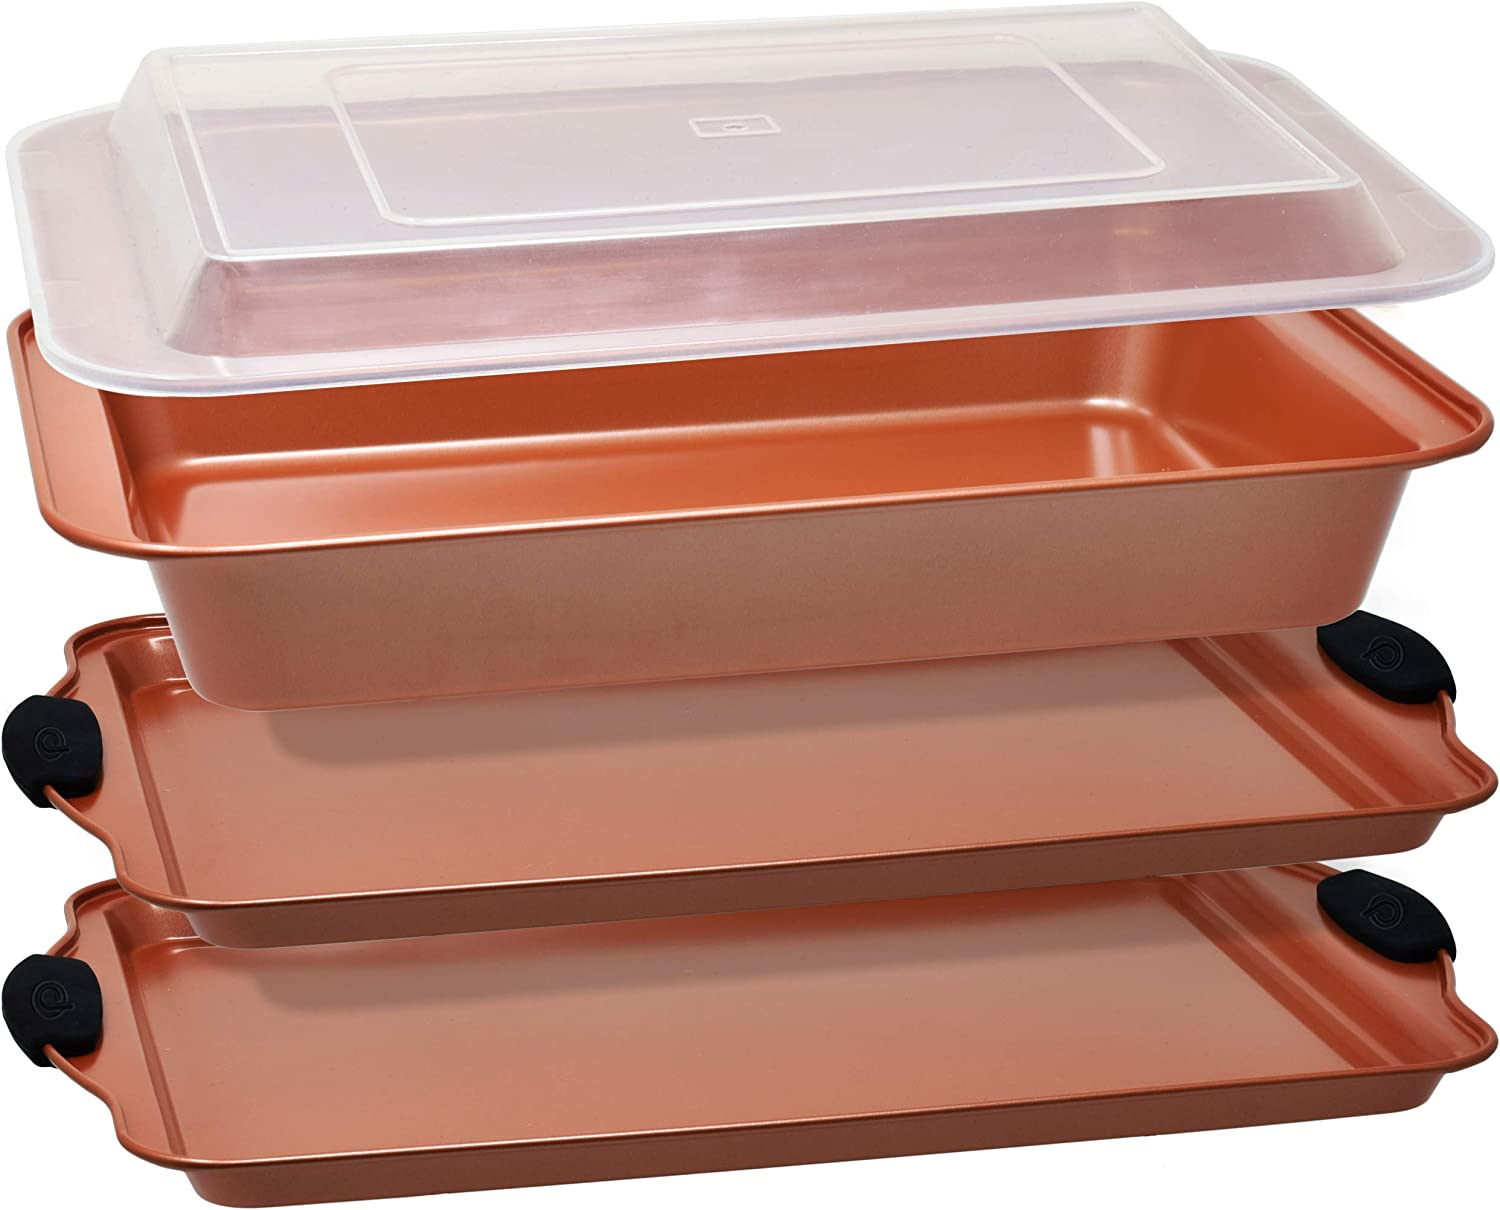 Copper Baking Sheet Pans Nonstick Bakeware Set 4 Piece includes 2 Large Cookie Sheets with Black Silicone Handles a 9x13 Rectangular Cake Pan Plus a Clear Plastic Cover for Easy Storage by PERLLI